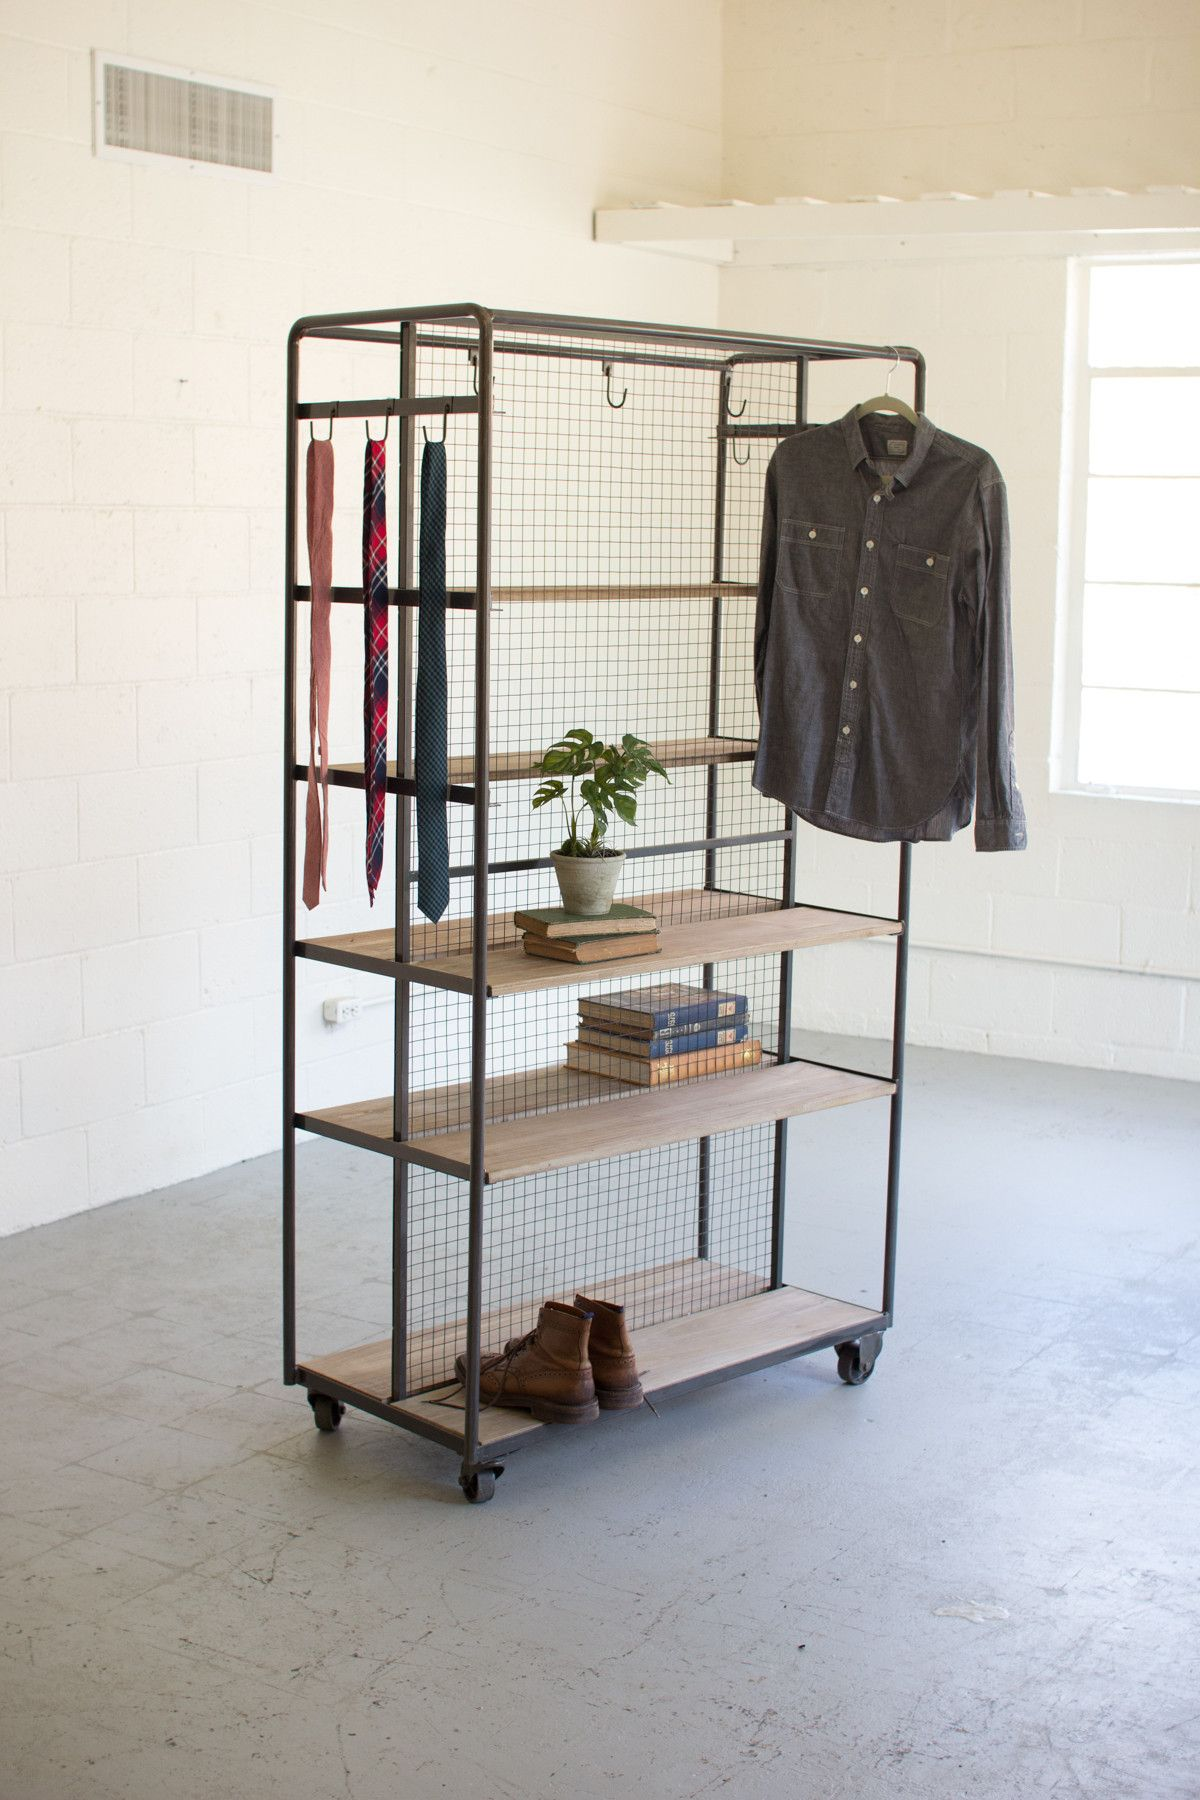 This Effecient Rolling Storage Rack Is A Single Solution With For Your  Home. With 6 Wooden Shelves, 10 Movable Hooks U0026 Sides For Hanging Scarves,  ...